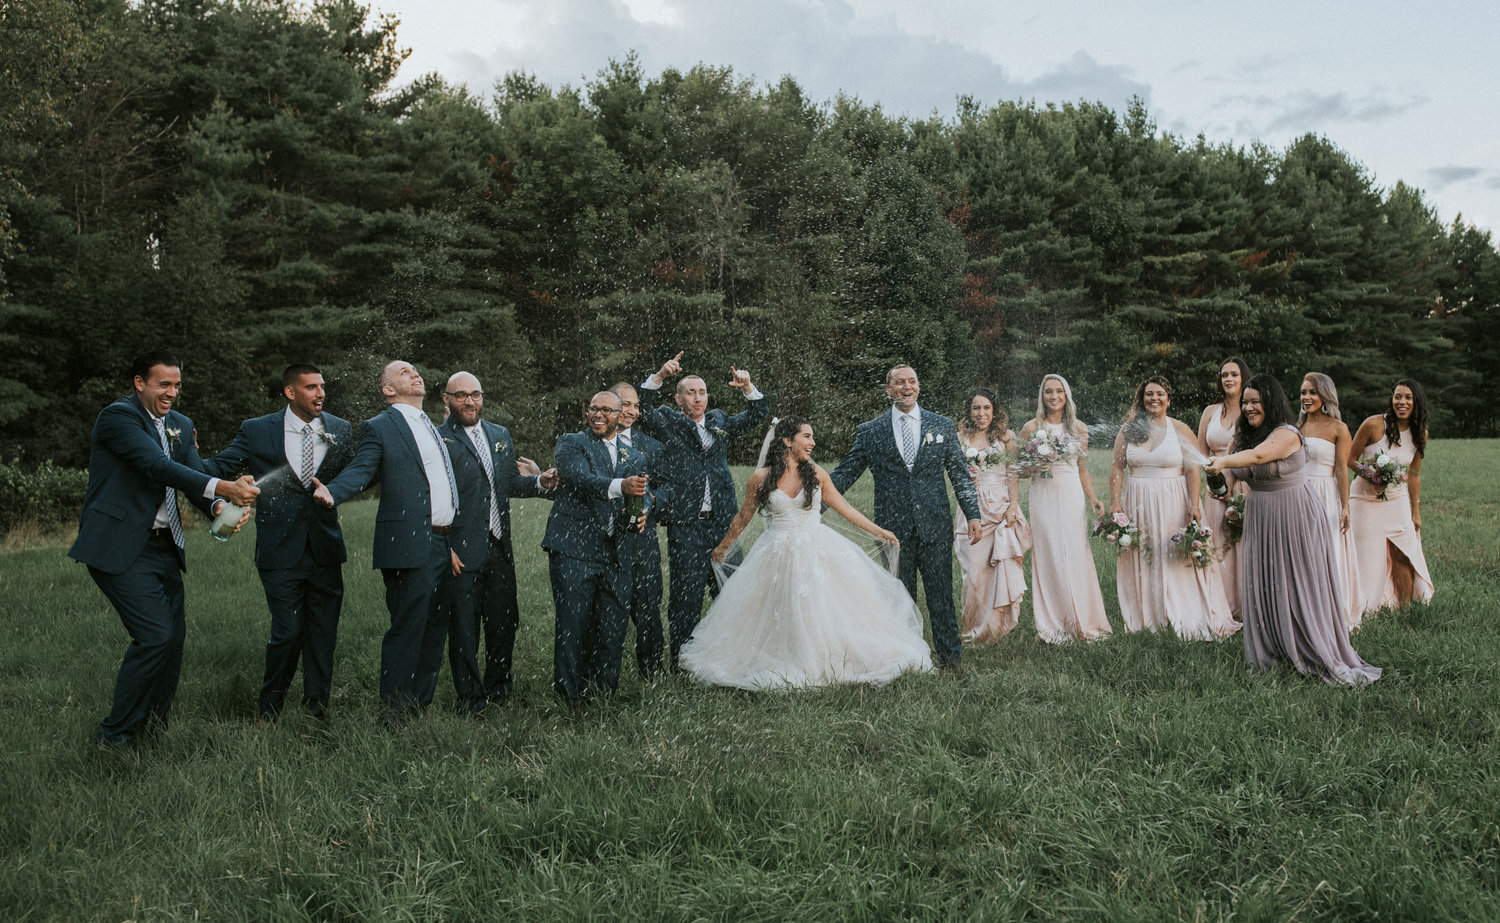 Flanagan farm maine wedding bridal party bridesmaids groomsmen boutonnieres bouquets blush.jpg